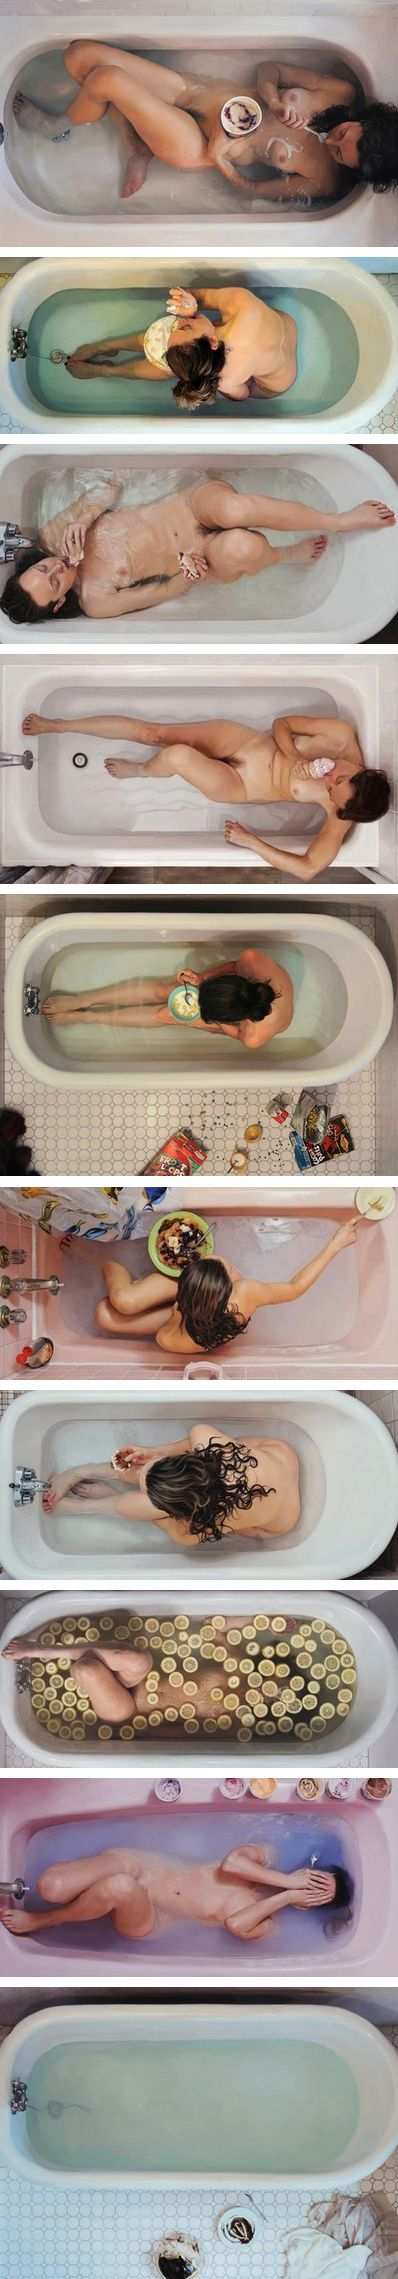 Lee Price's self portraits in the tub with food are amazing examples of contemporary photo realism. So impressive.